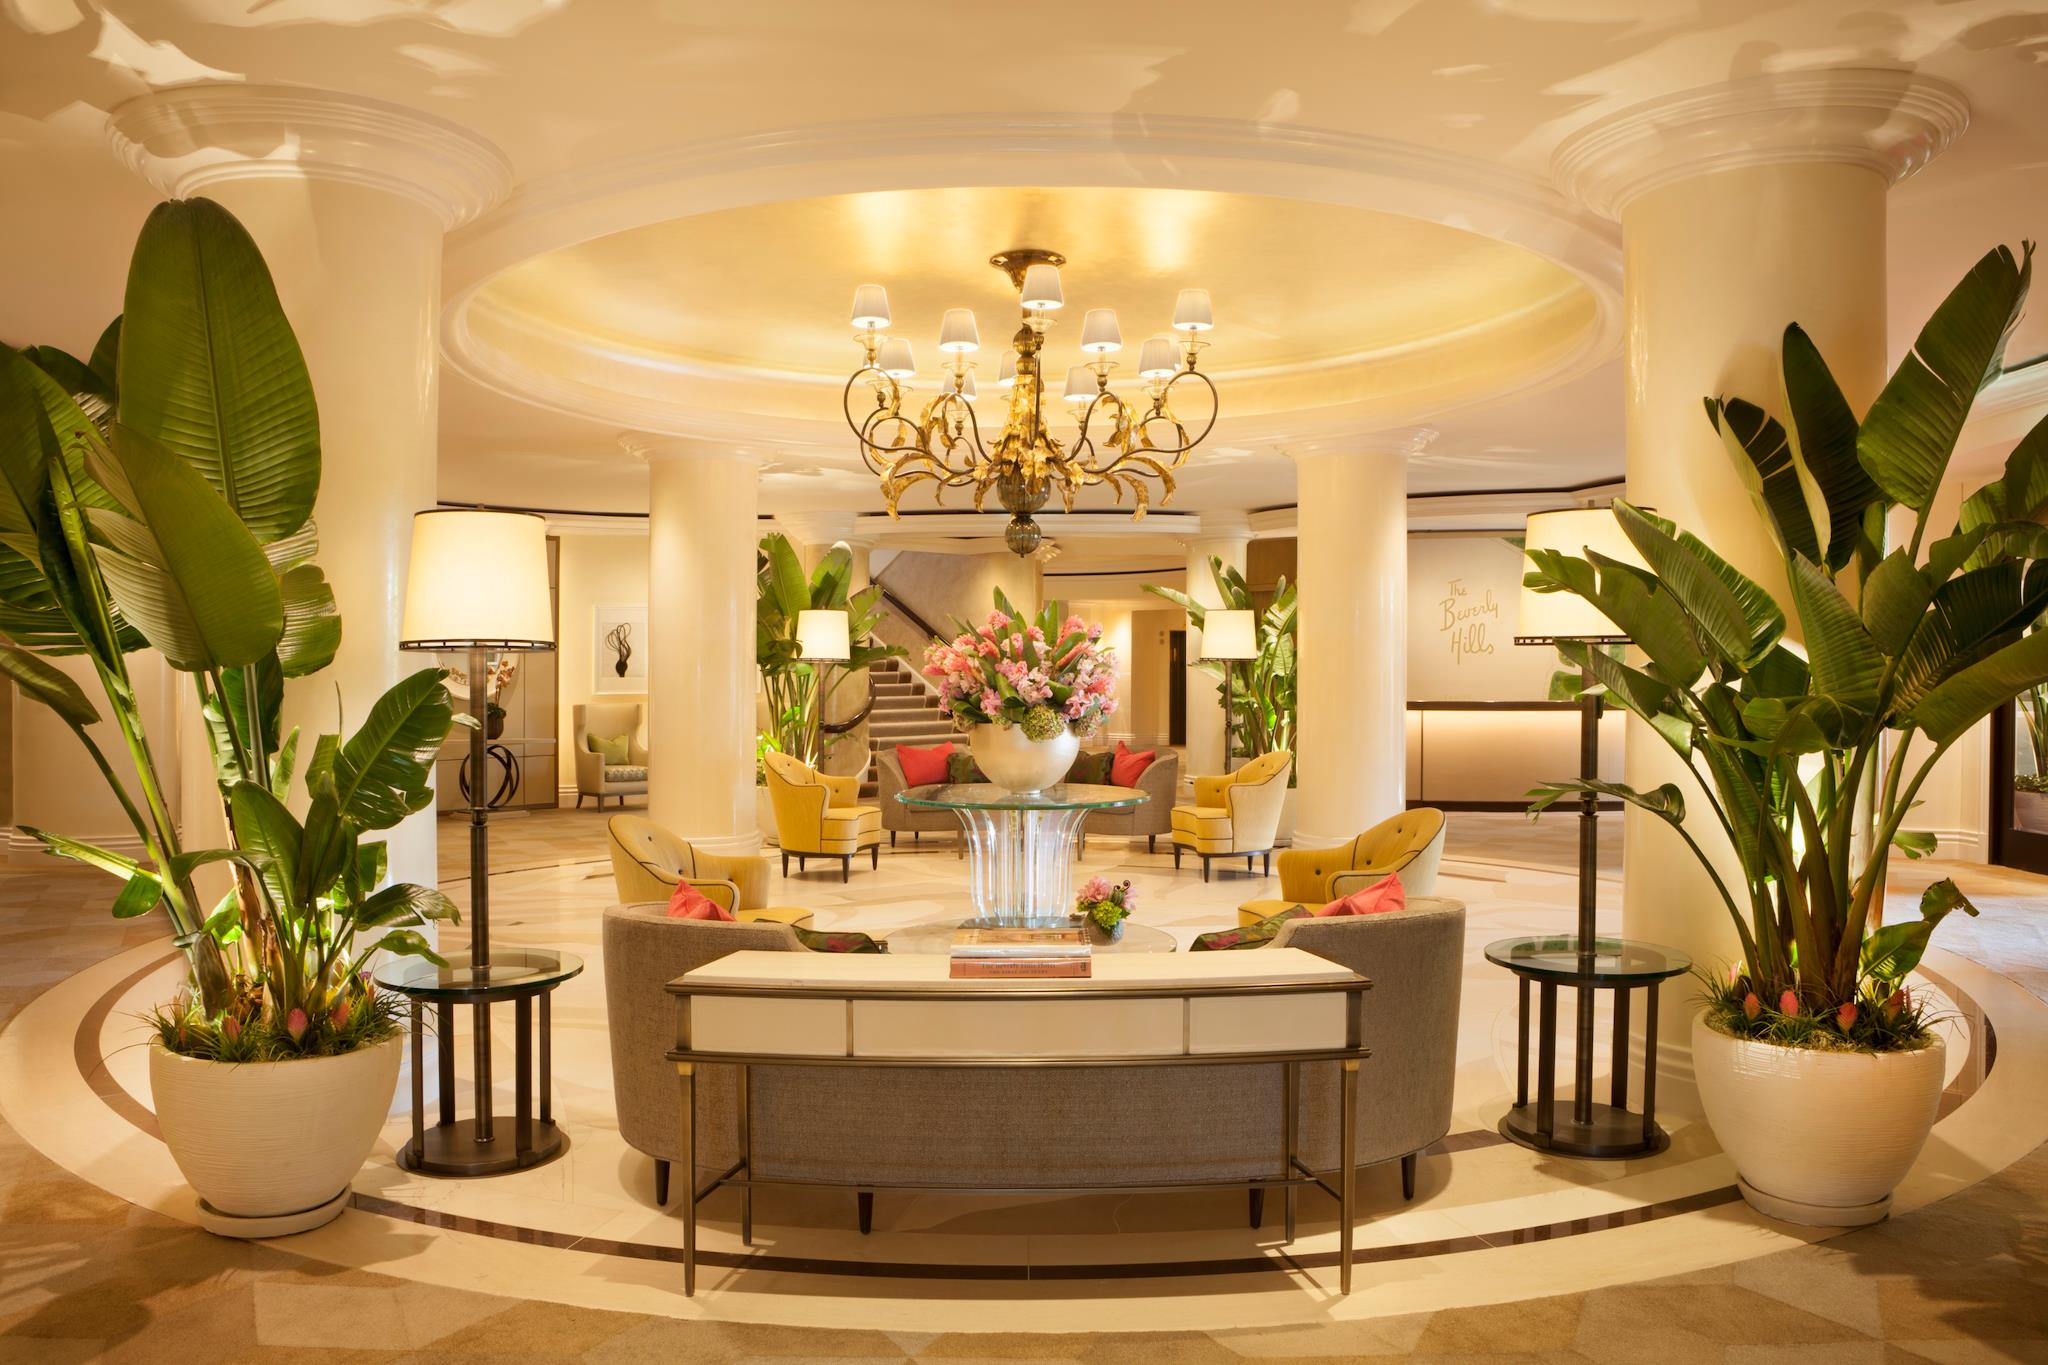 Tropical modern d cor at the beverly hills hotel - Decoration salon photo ...